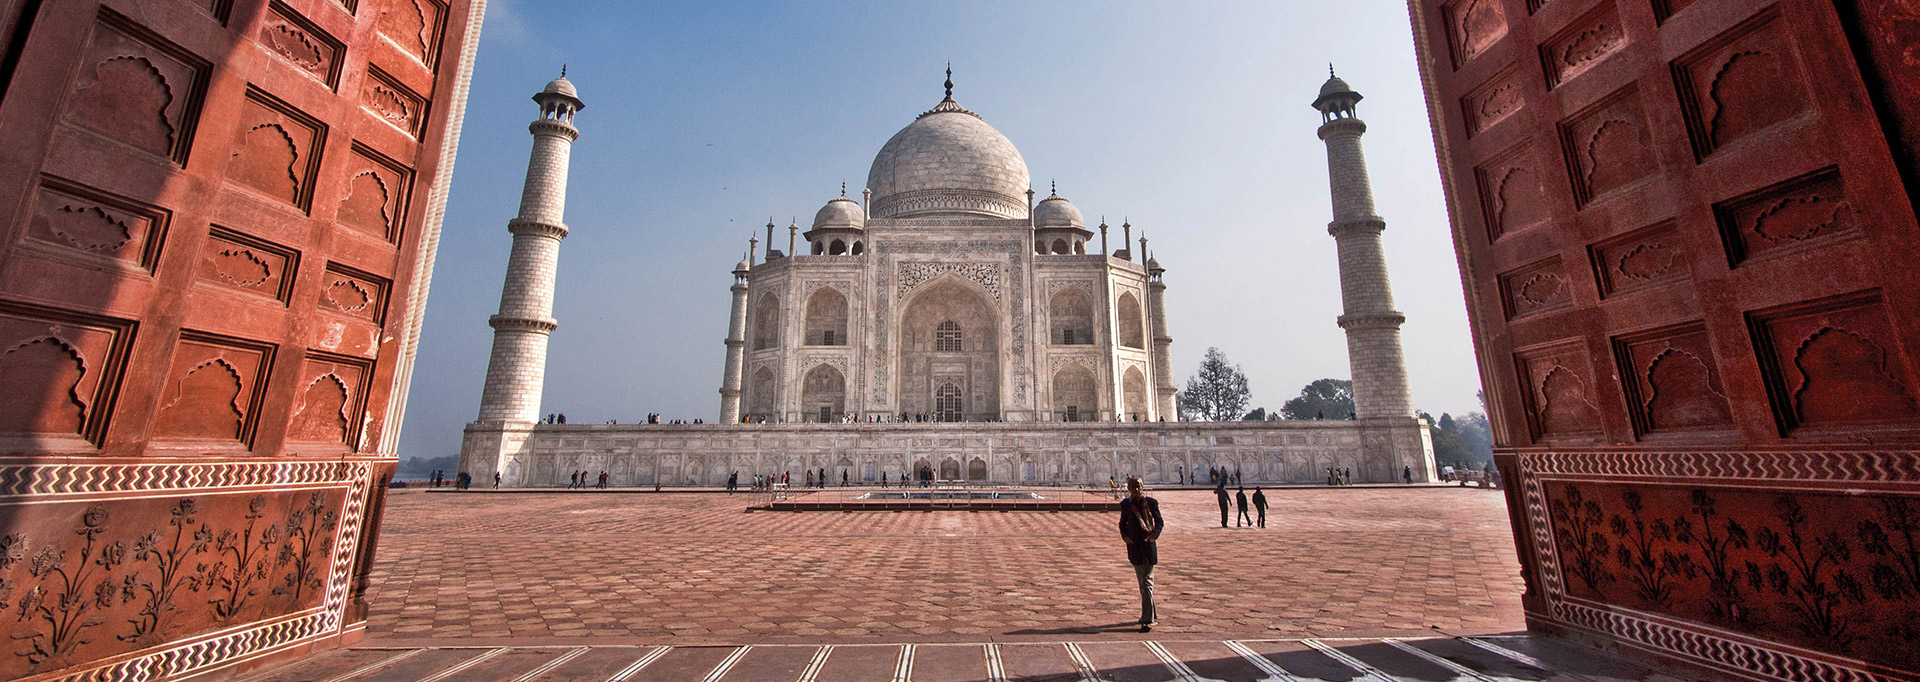 Get a complete and thorough Taj Mahal Tour Guide here